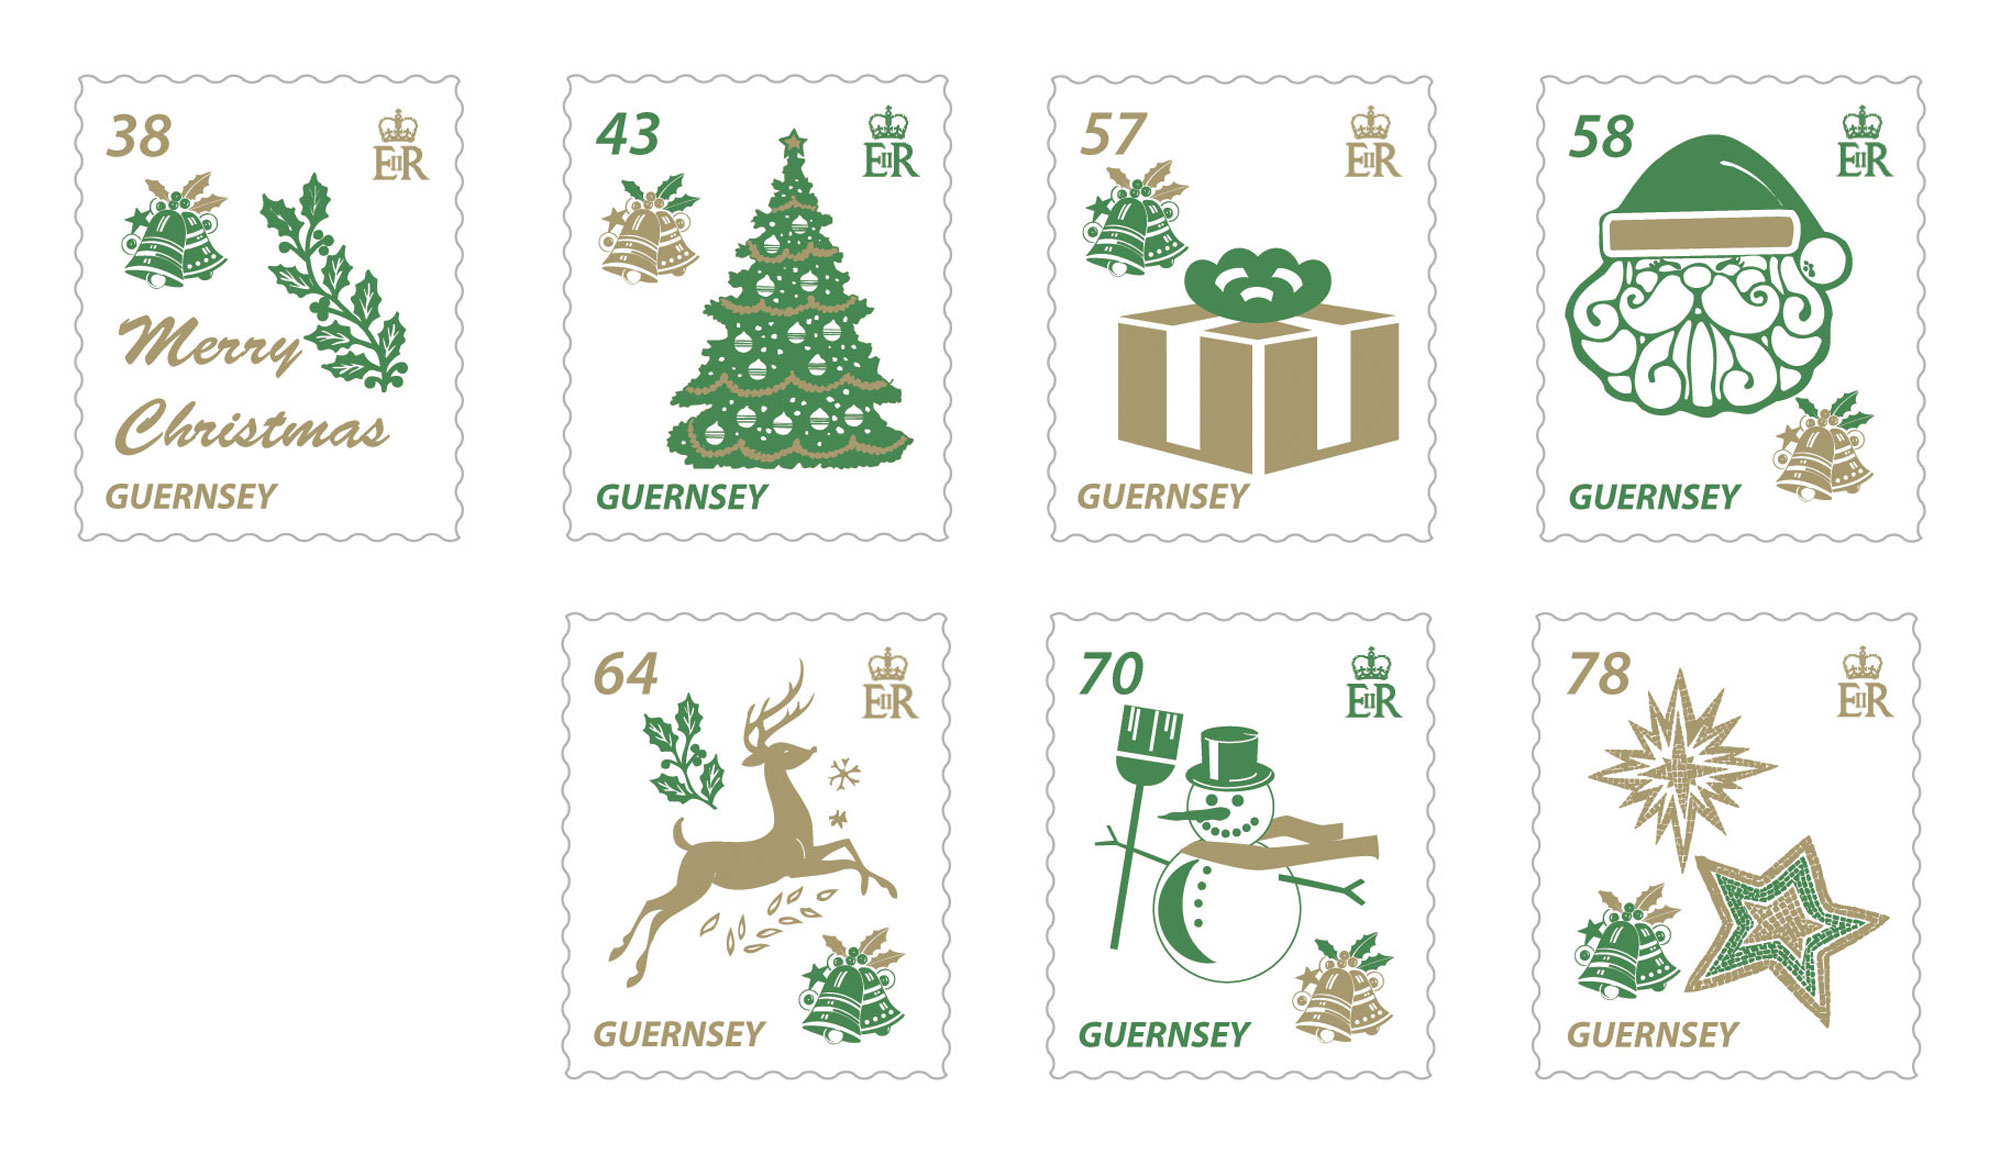 Guernsey and Alderney Stamps get festive